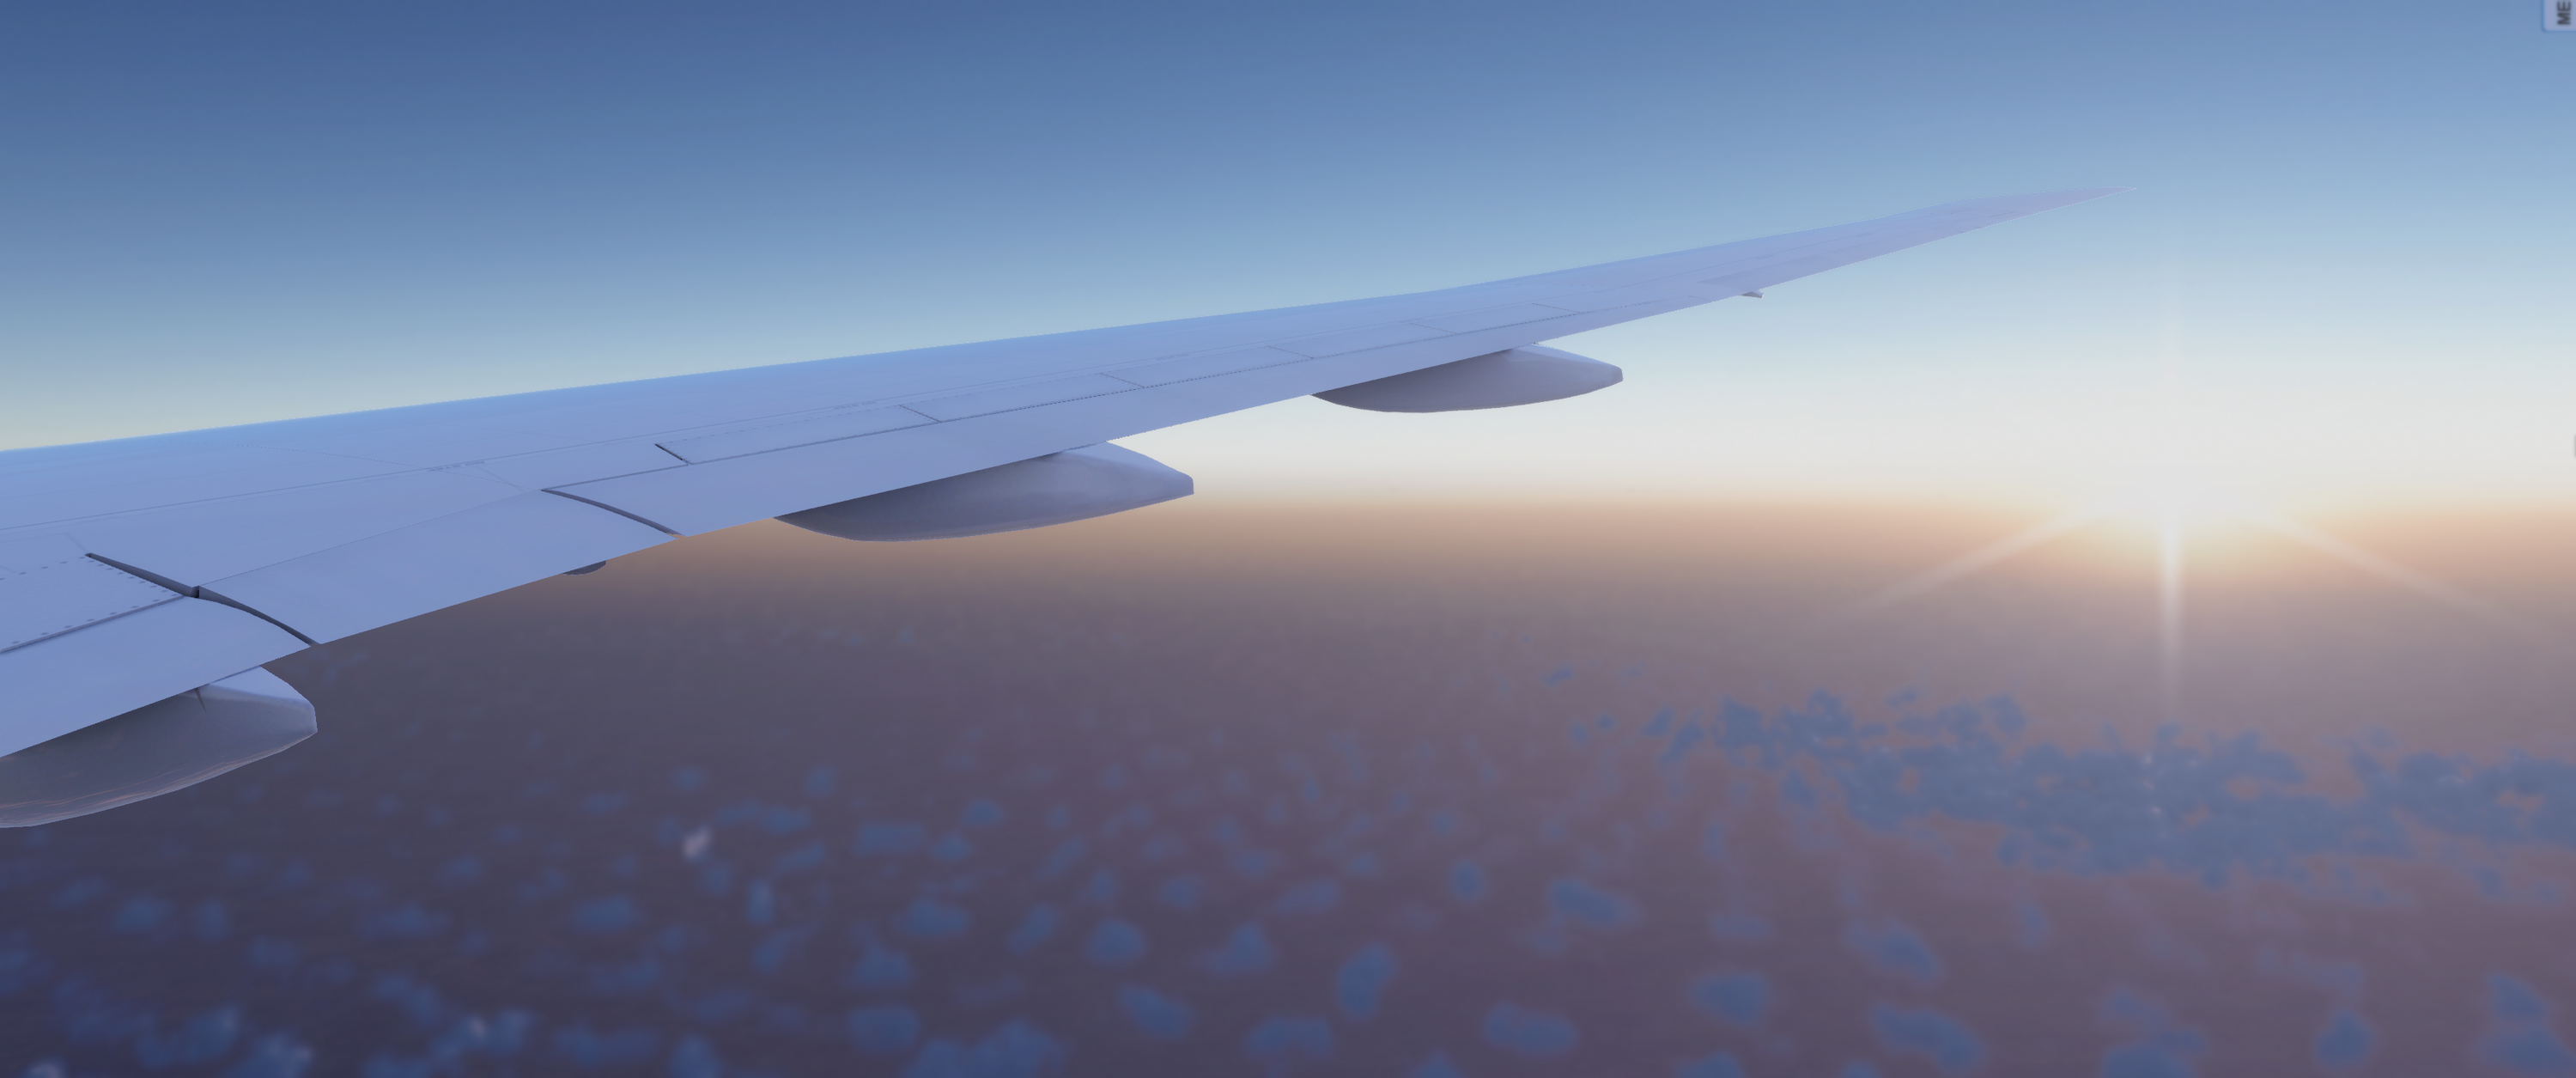 X-Plane Screenshot 2020.03.09 - 15.29.16.57.png